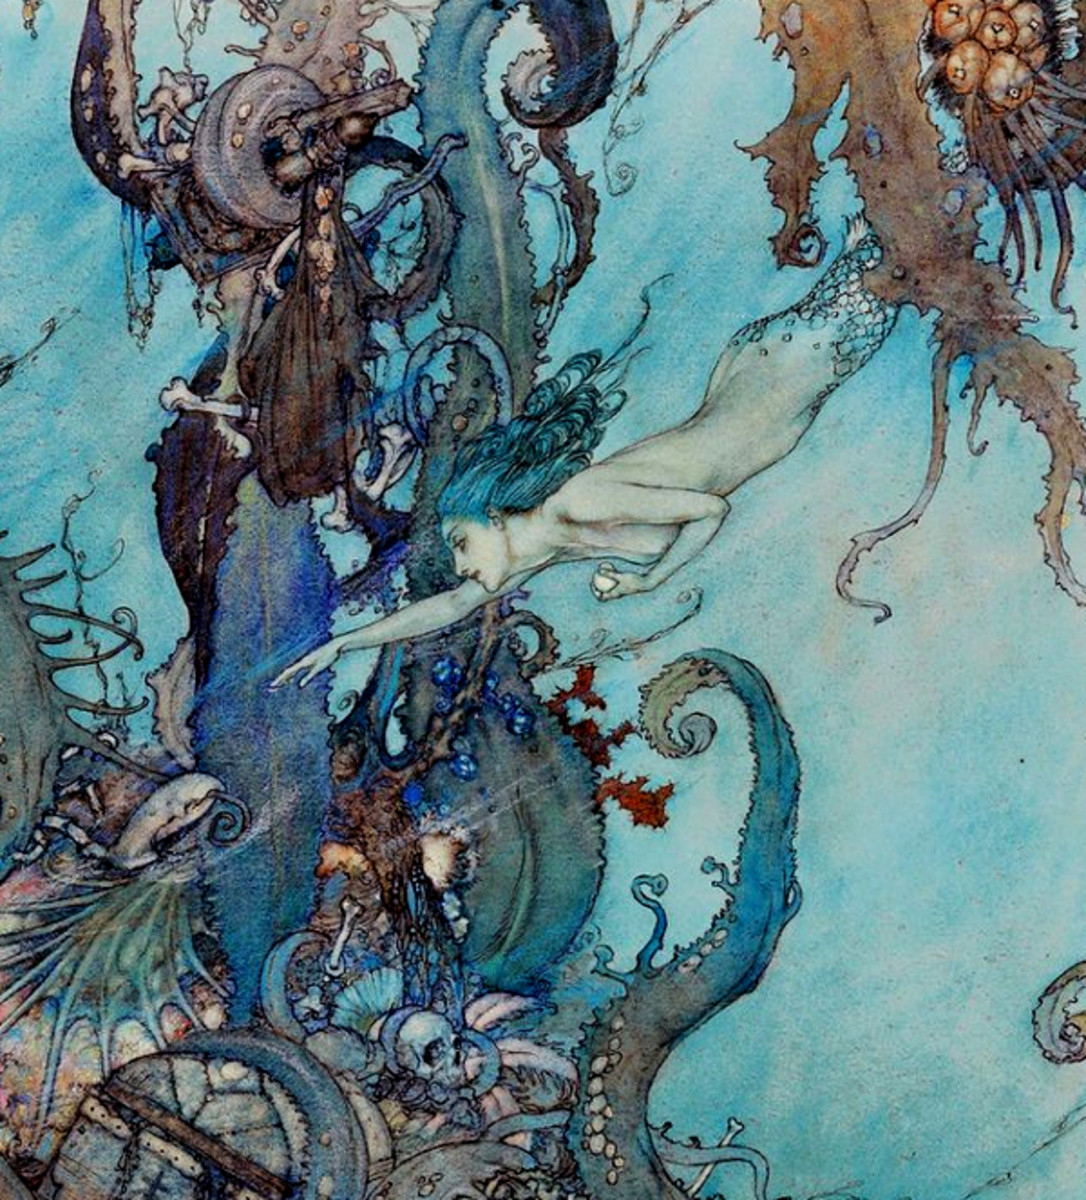 "Here we show a portion of an illustration associated with 'The Little Mermaid' - it is from the suite by Edmund Dulac published in ""Stories from Hans Anderson"" (1911)."